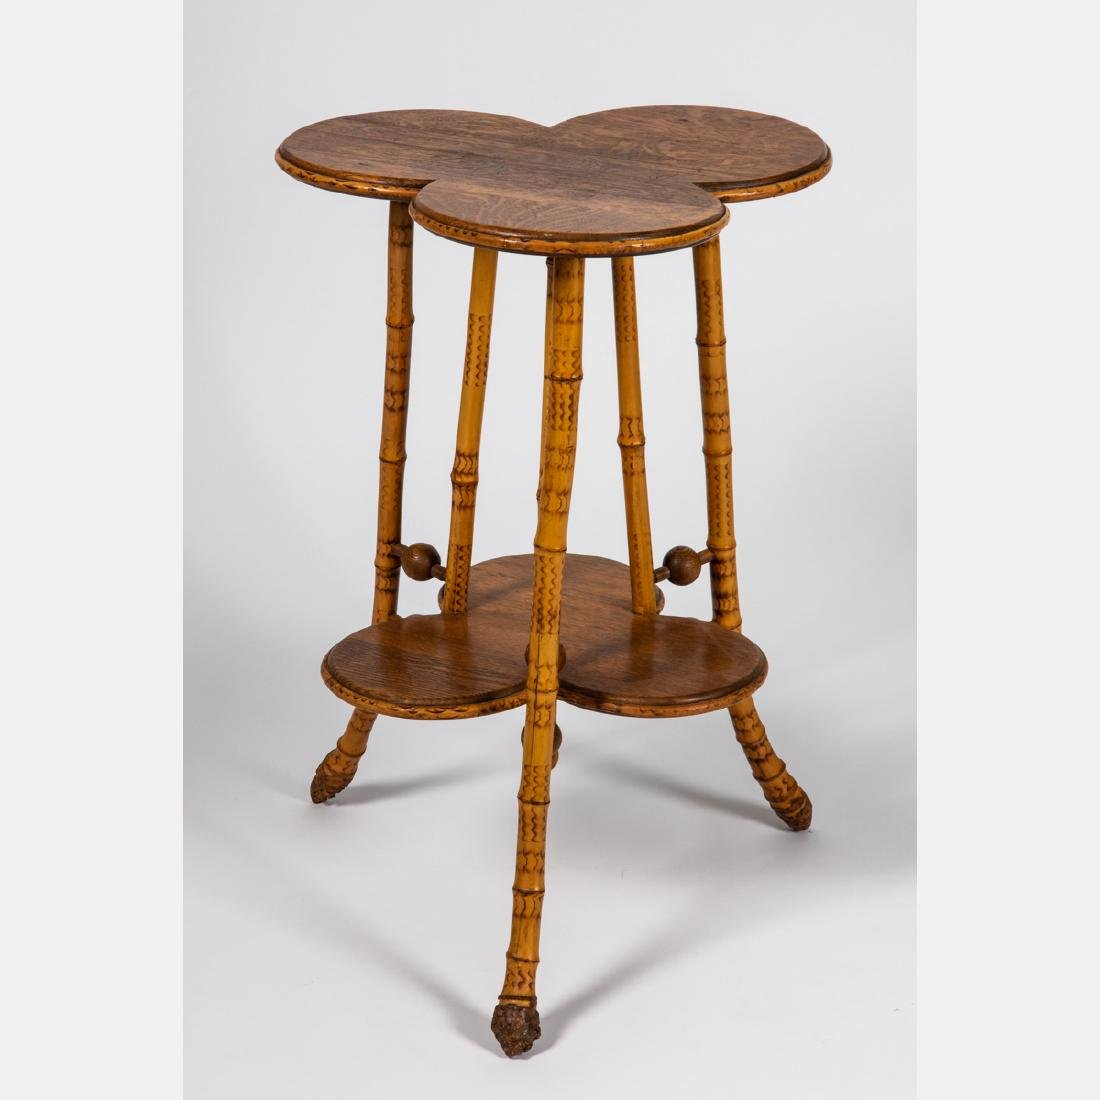 A Victorian Bamboo Two Tiered Stand, 19th Century. - 2